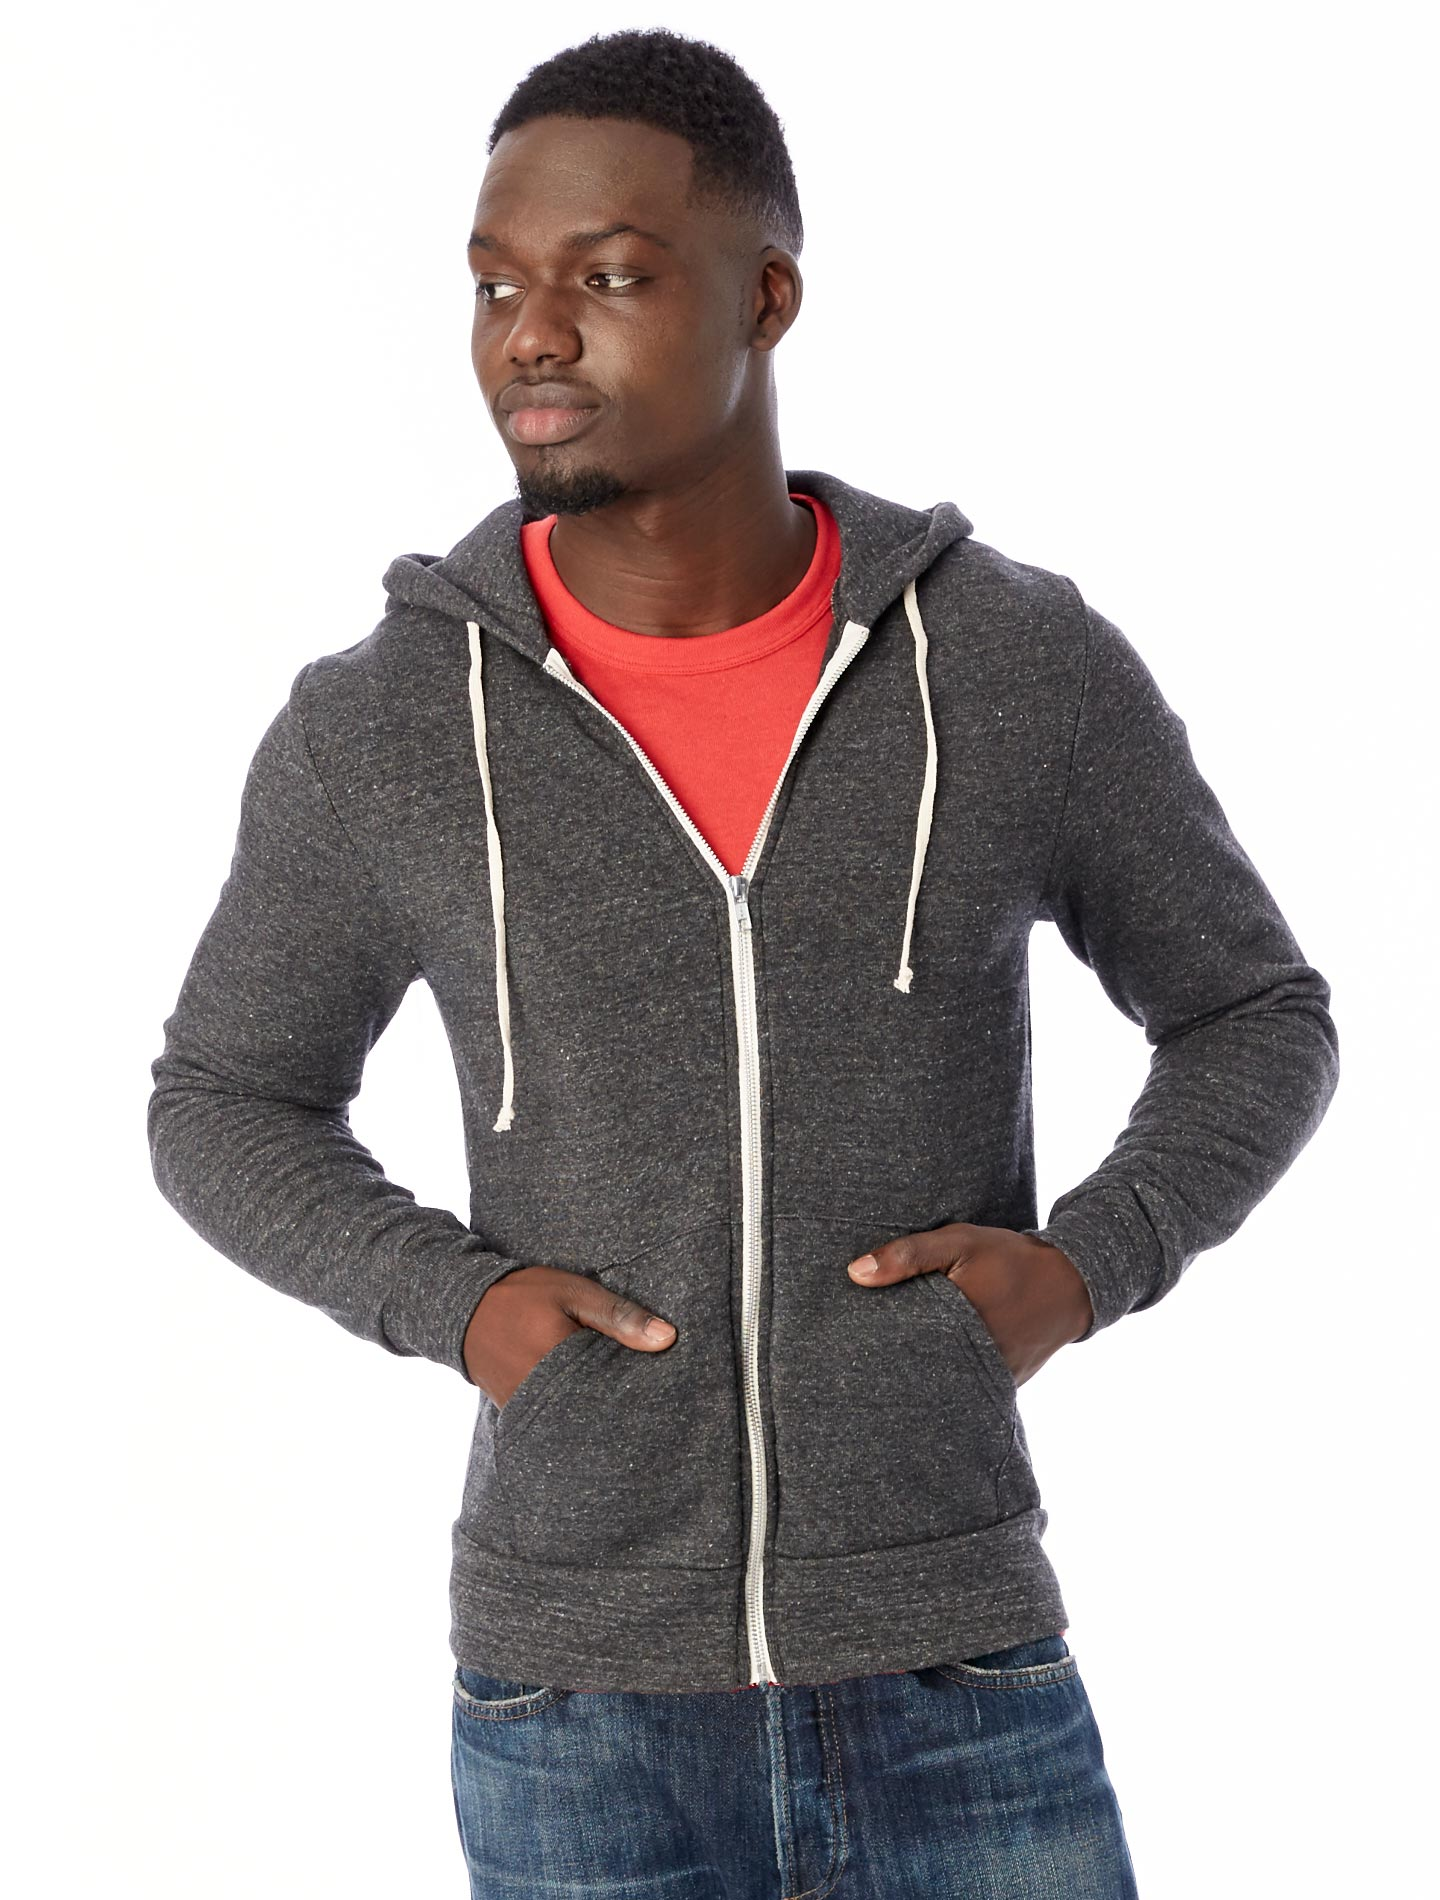 Shown Above: Eco Zip fleece